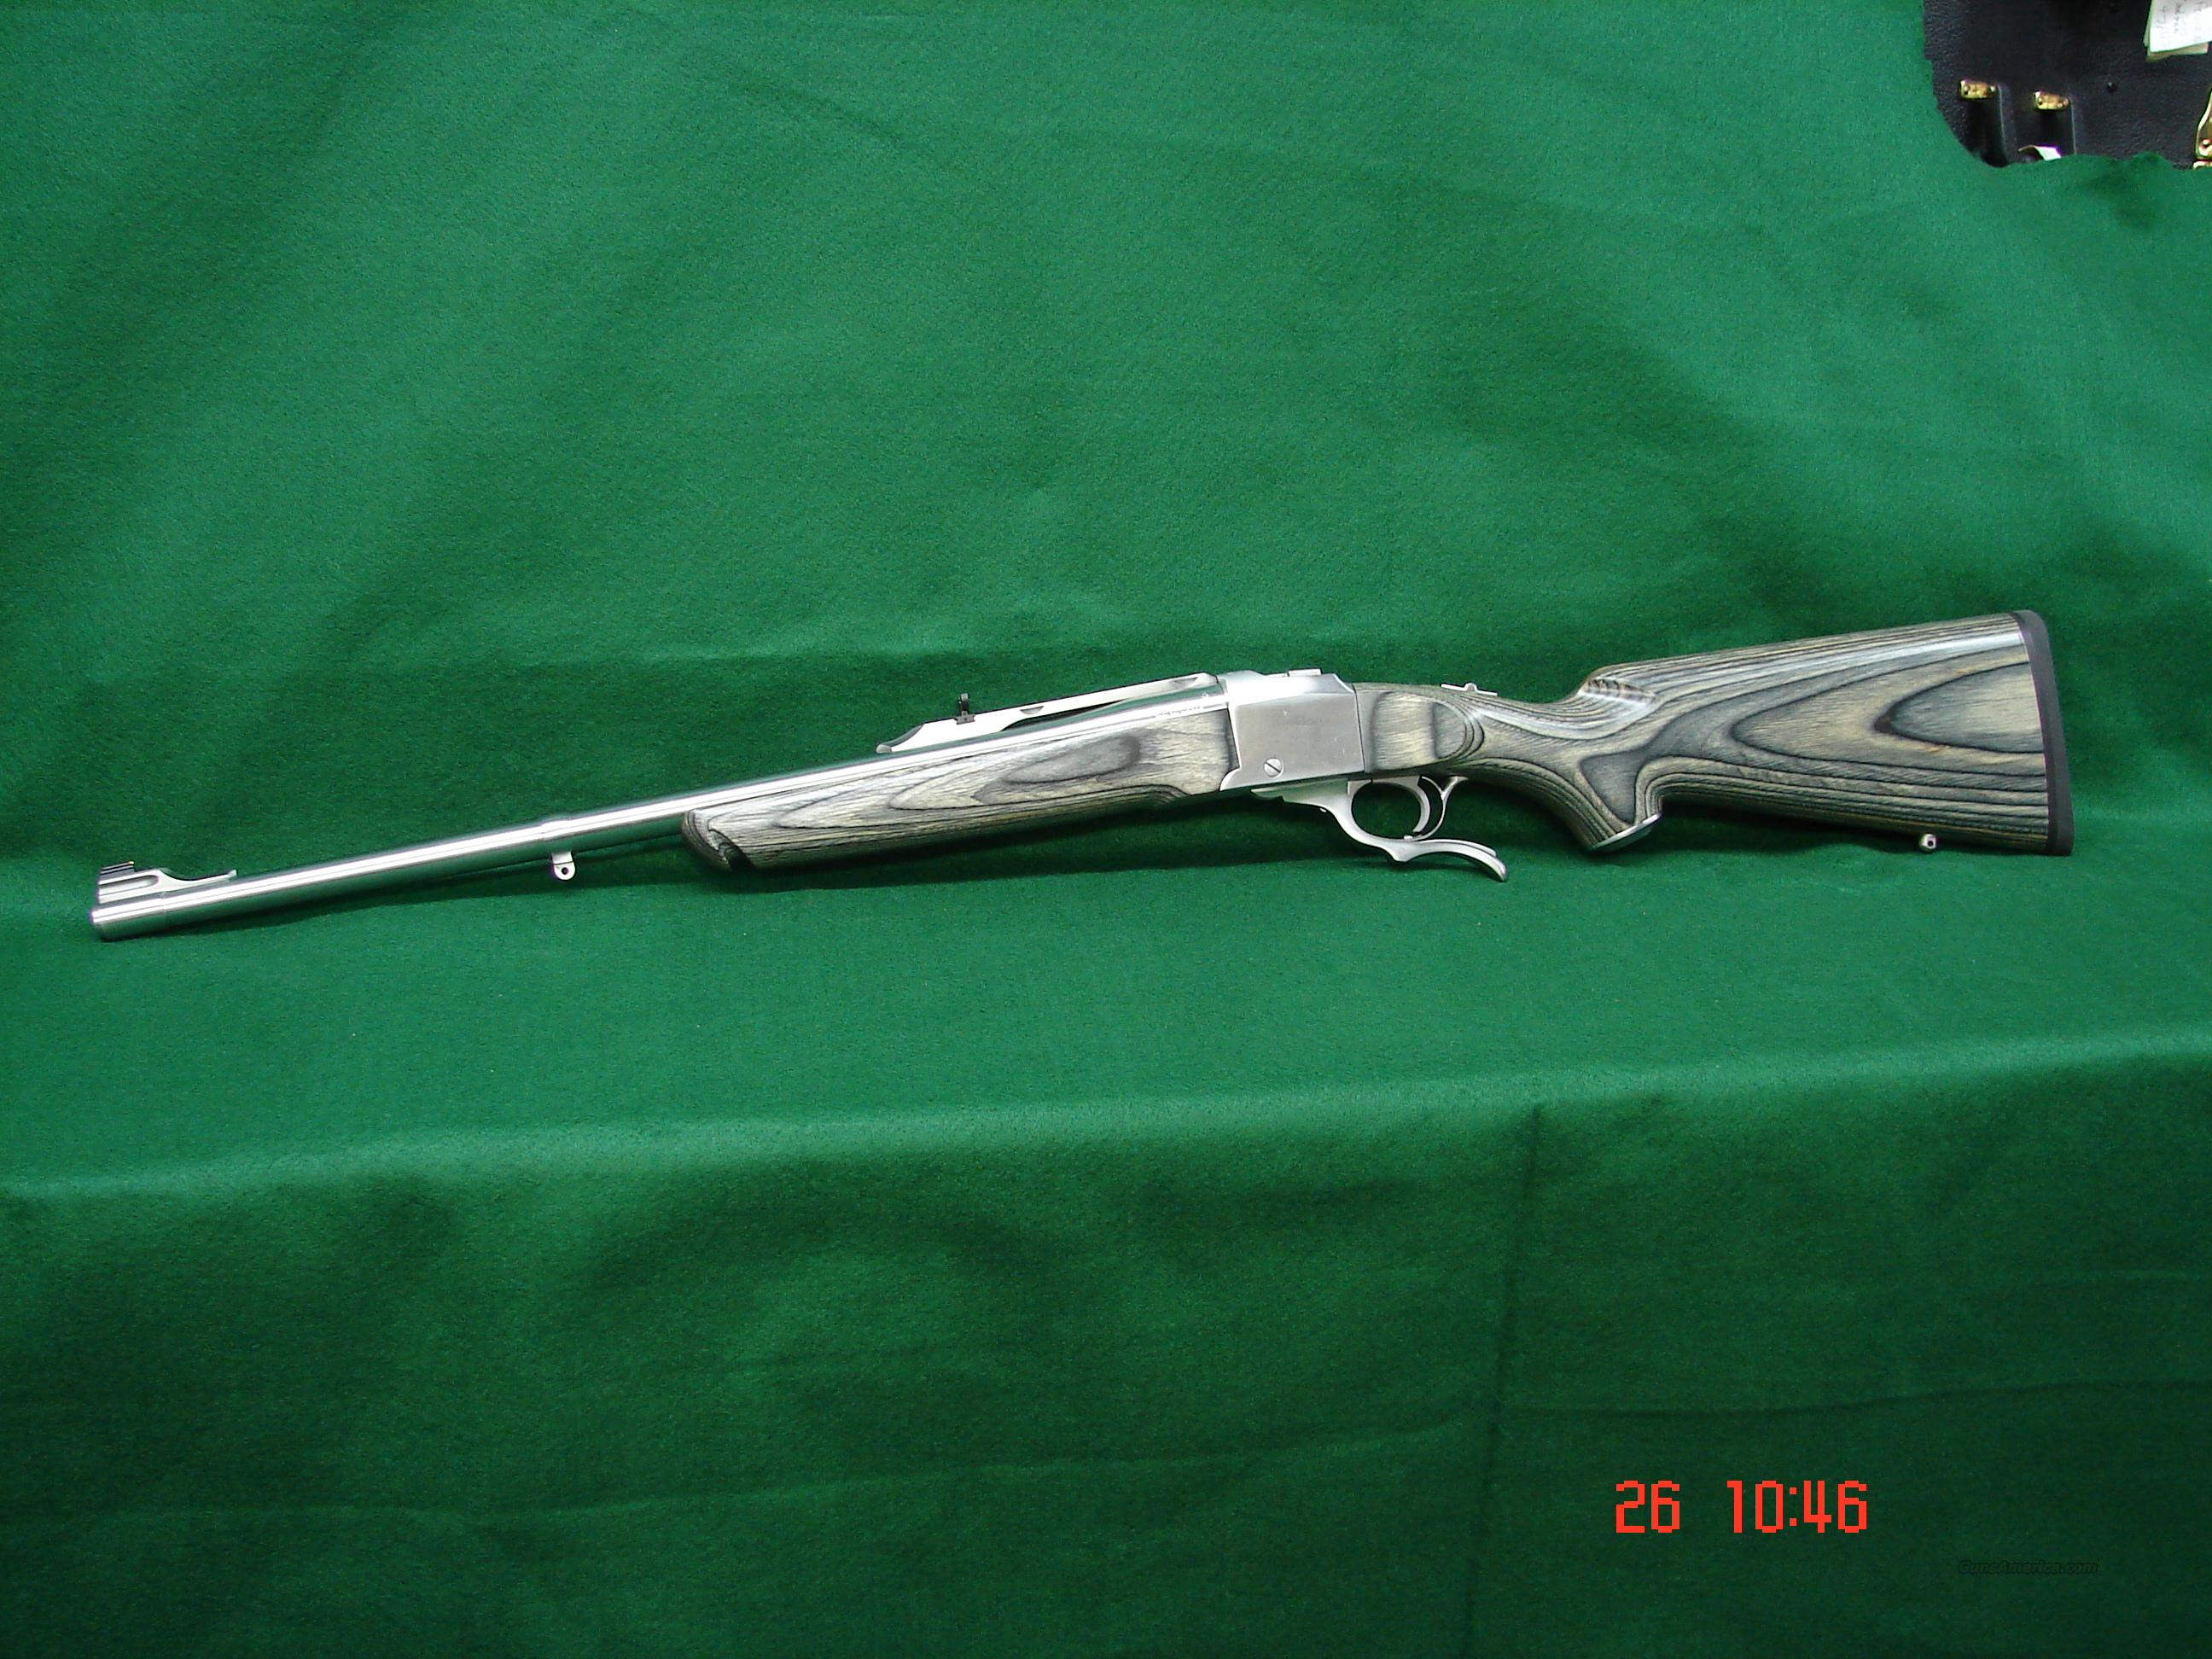 Ruger #1A 45-70 Stainless Log# 24849  Guns > Rifles > Ruger Rifles > #1 Type